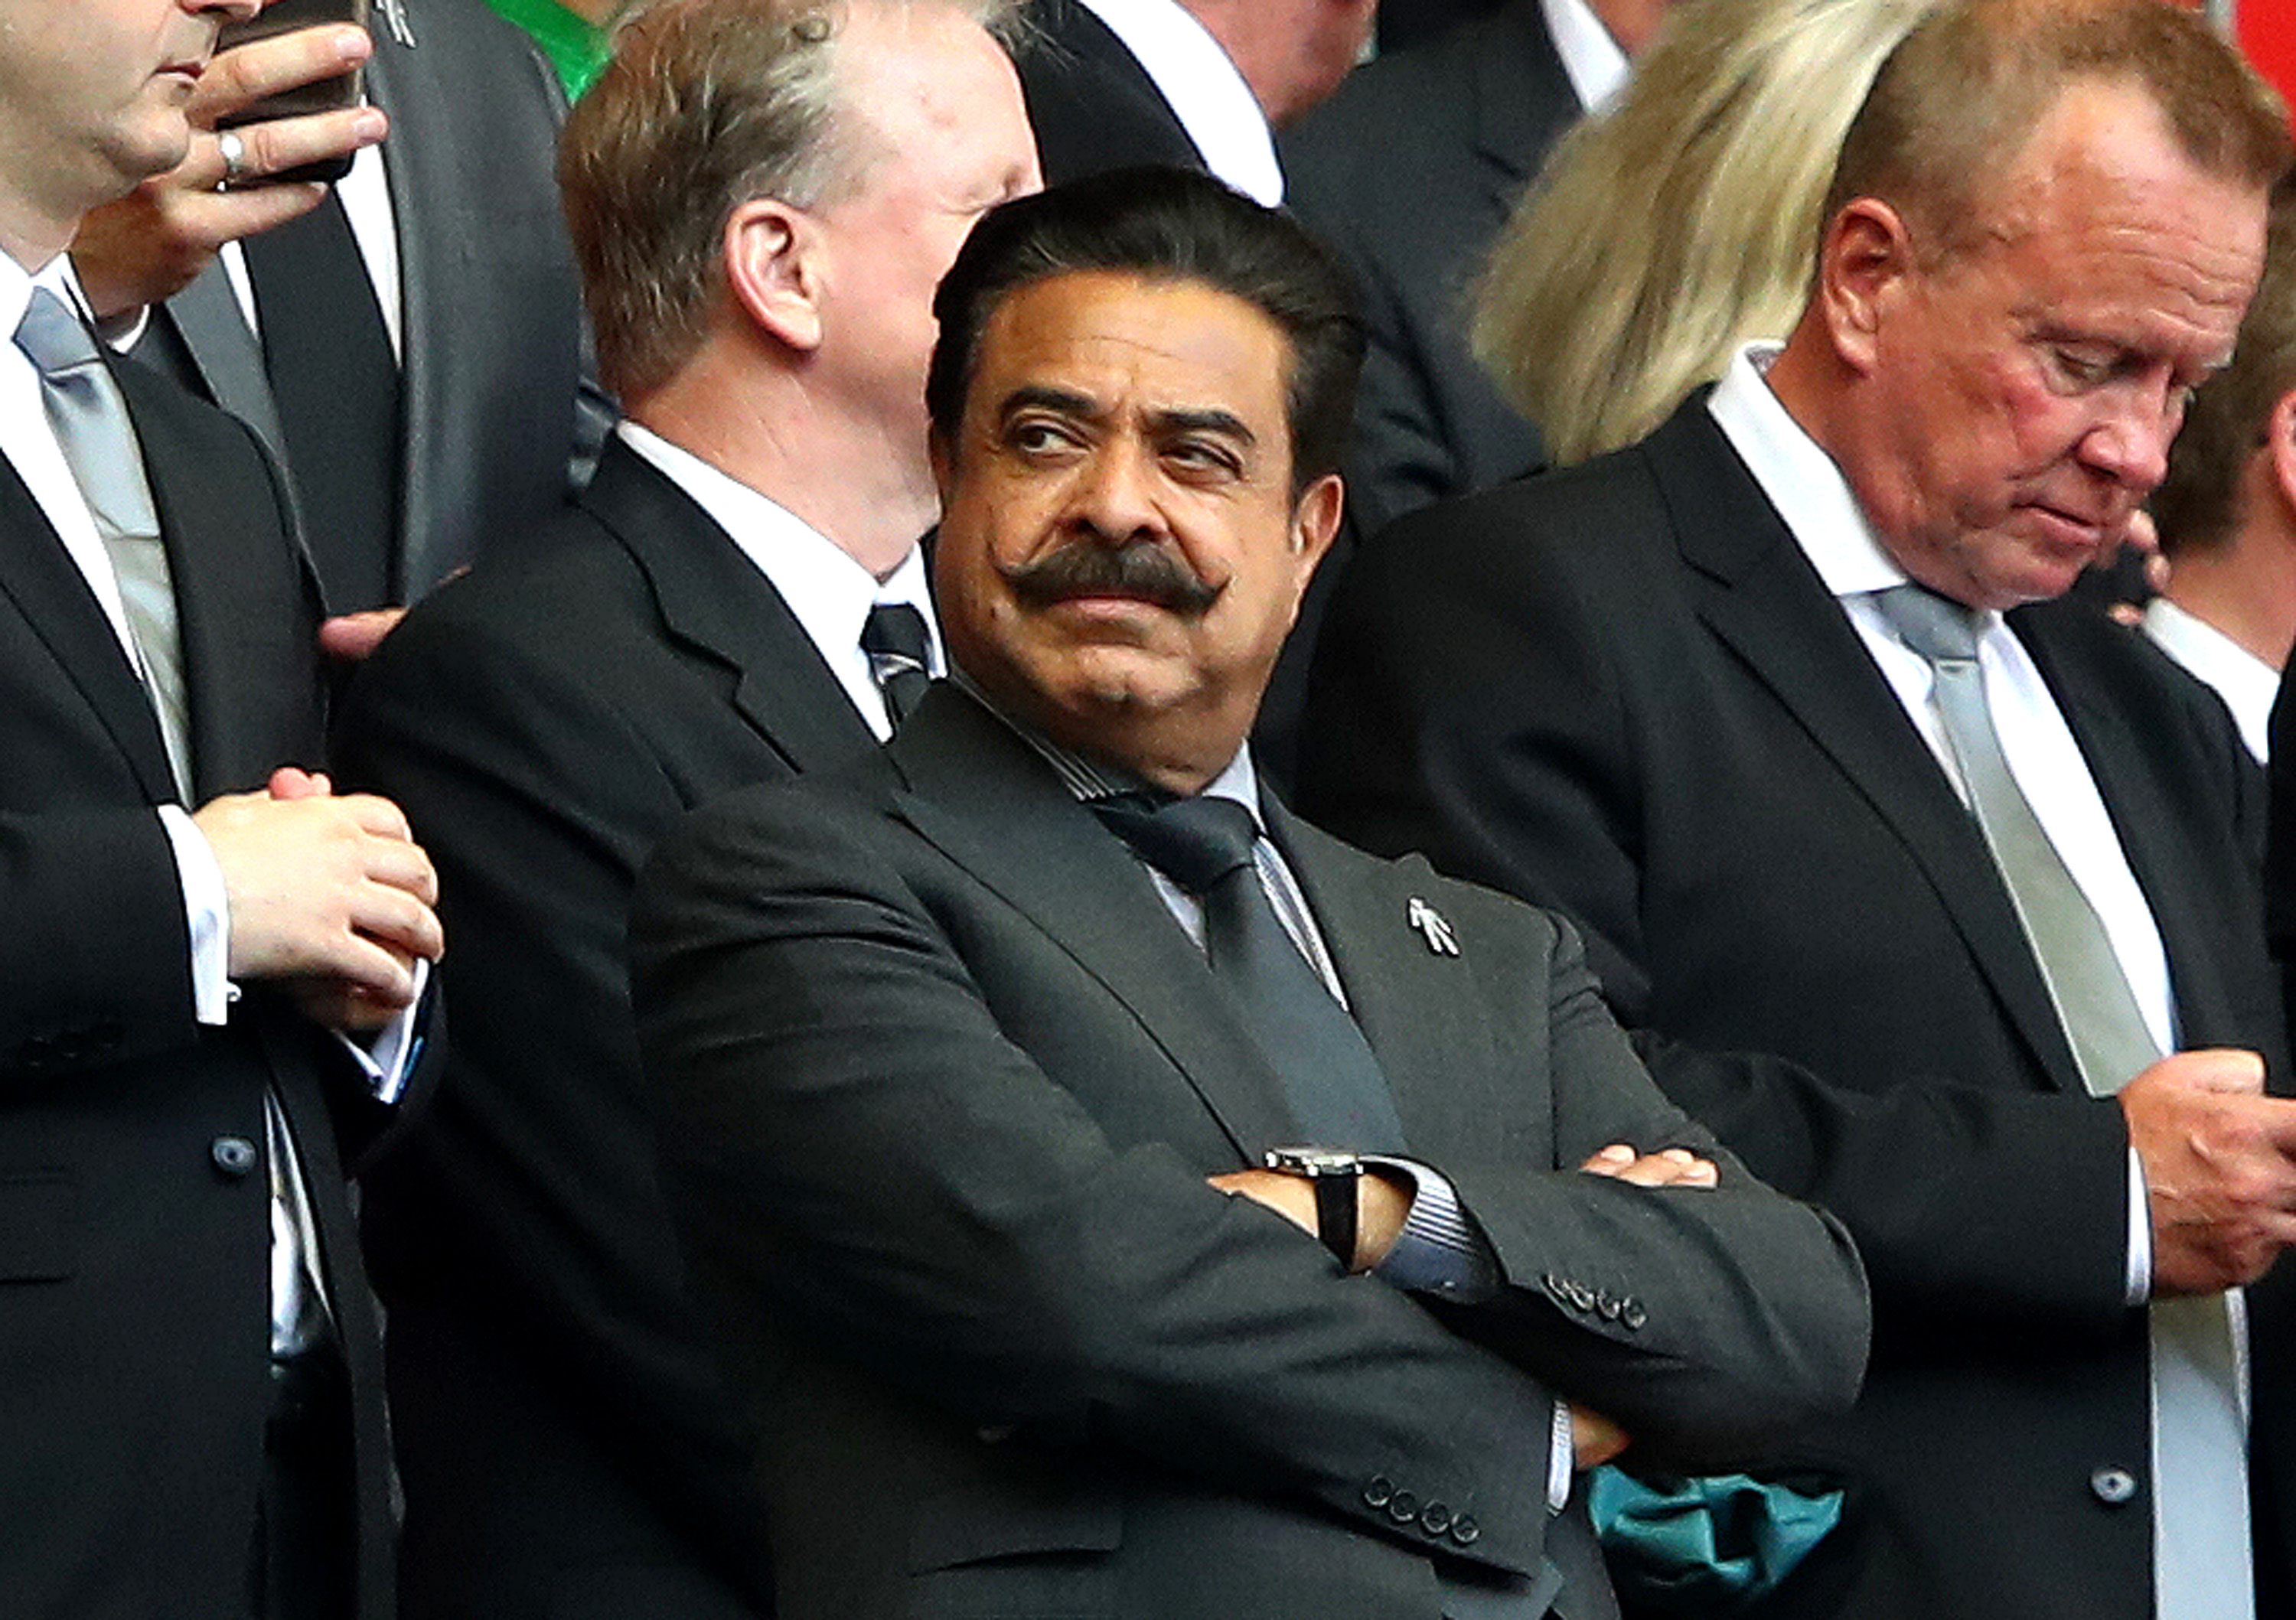 Fulham owner Shahid Khan moves closer to £600m Wembley purchase